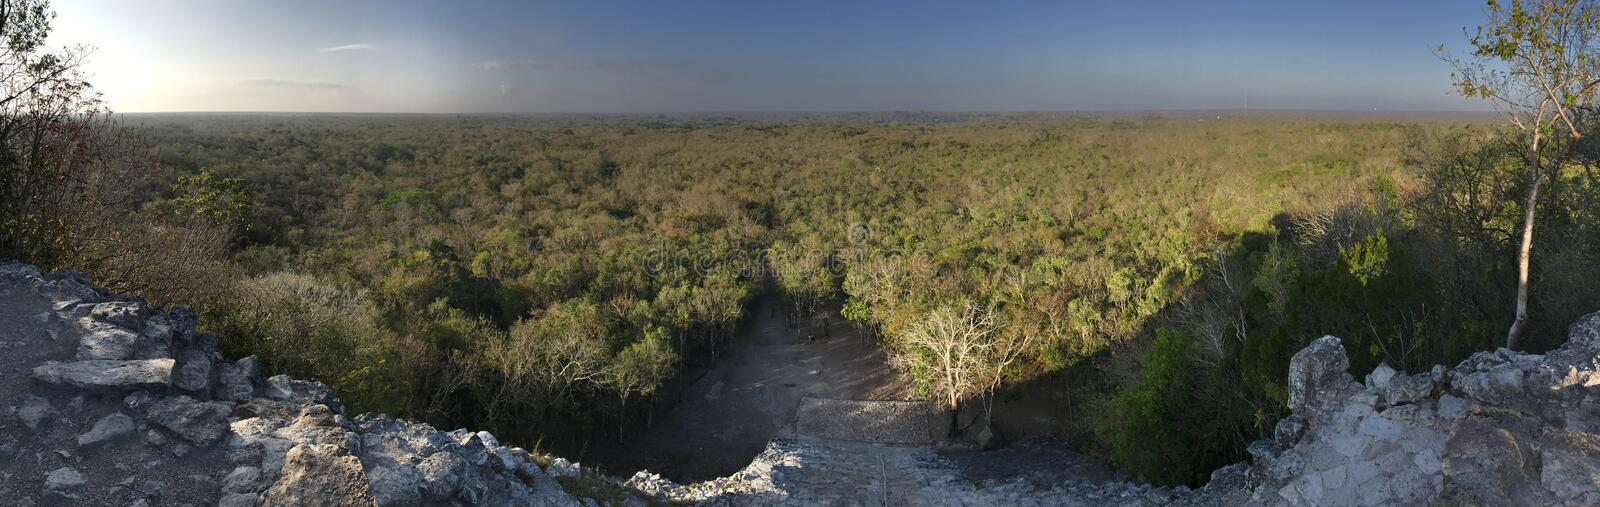 Coba Pyramid view. View from top of Coba Pyramid in Quintana Roo Mexico royalty free stock image